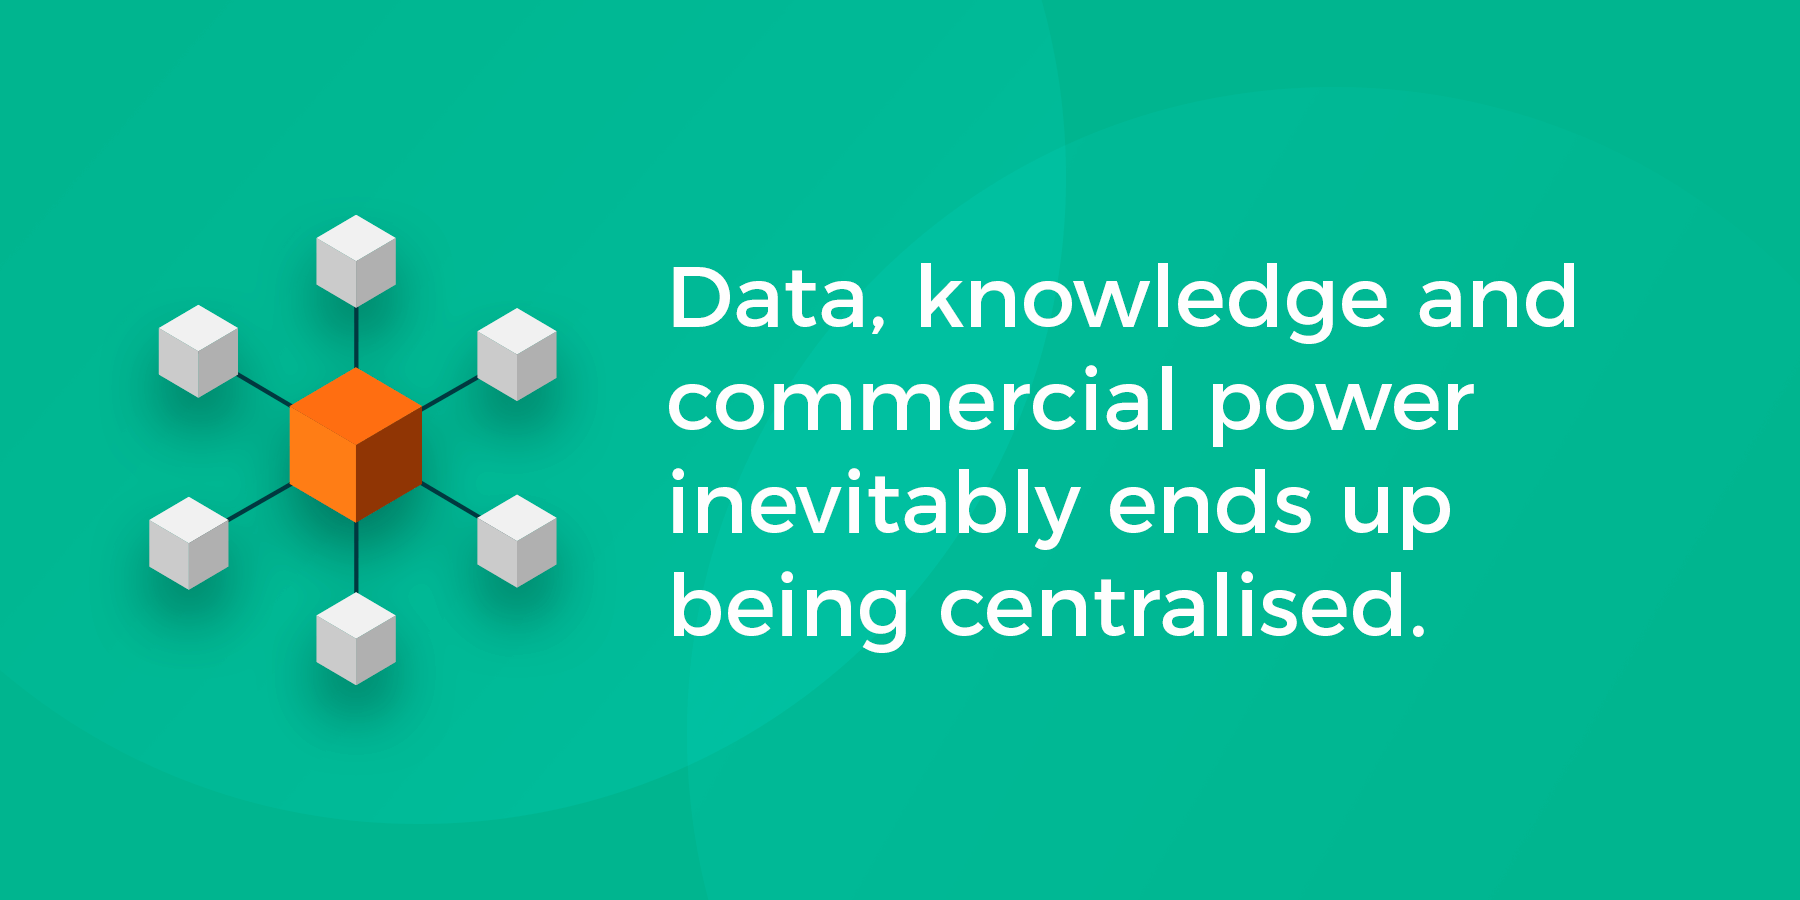 Data gathered inevitably ends up being centralised